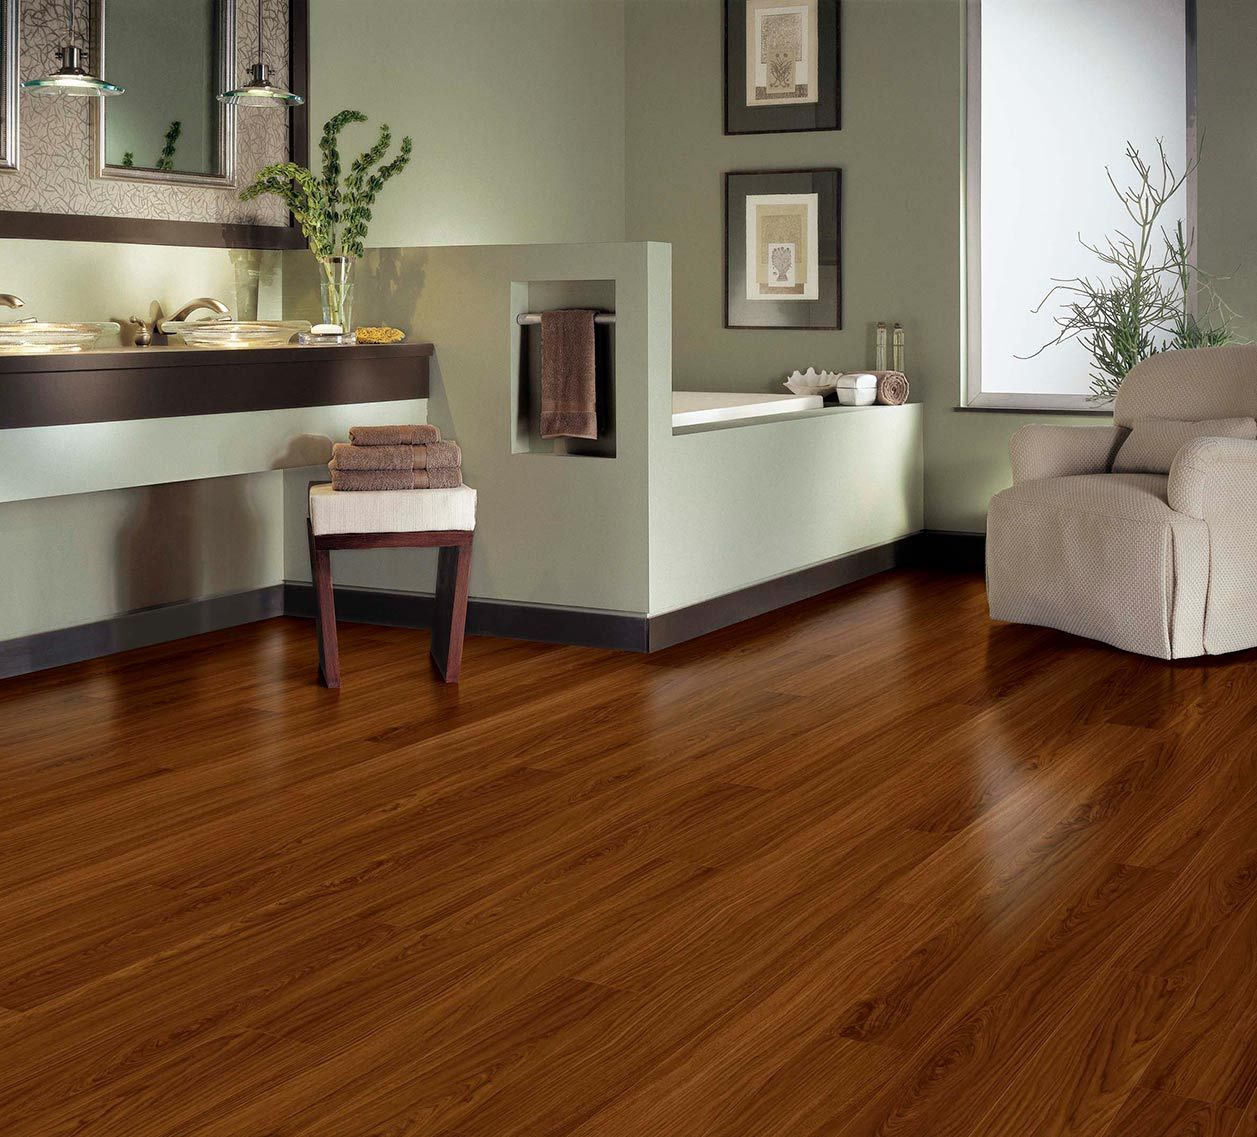 Luxury vinyl flooring end of the roll house stuff pinterest luxury vinyl flooring end of the roll dailygadgetfo Gallery